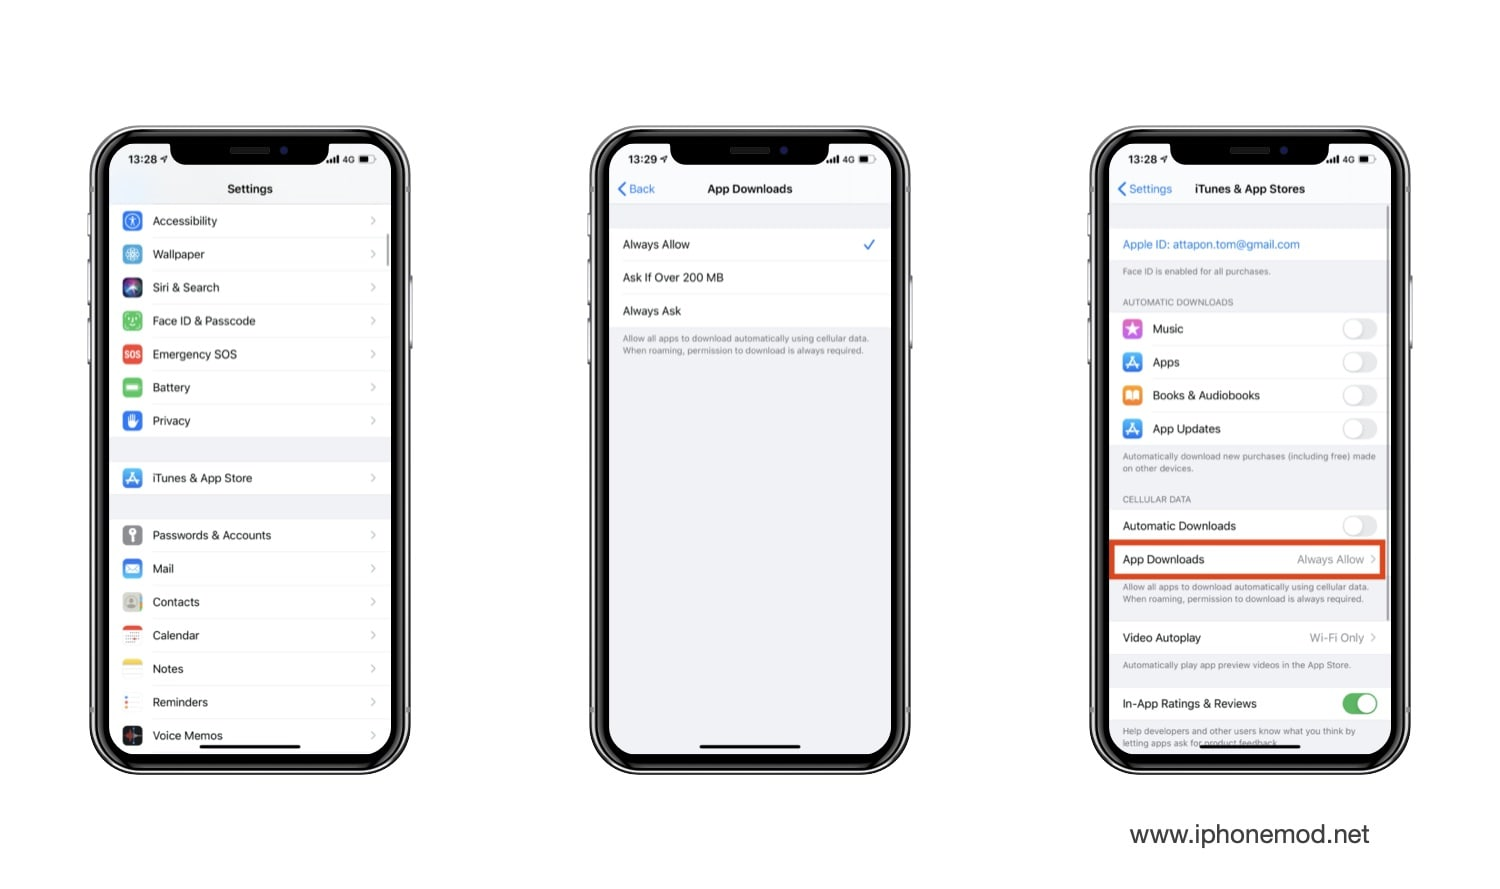 Allowed Ios 13 Download Full Size App Over Cellular